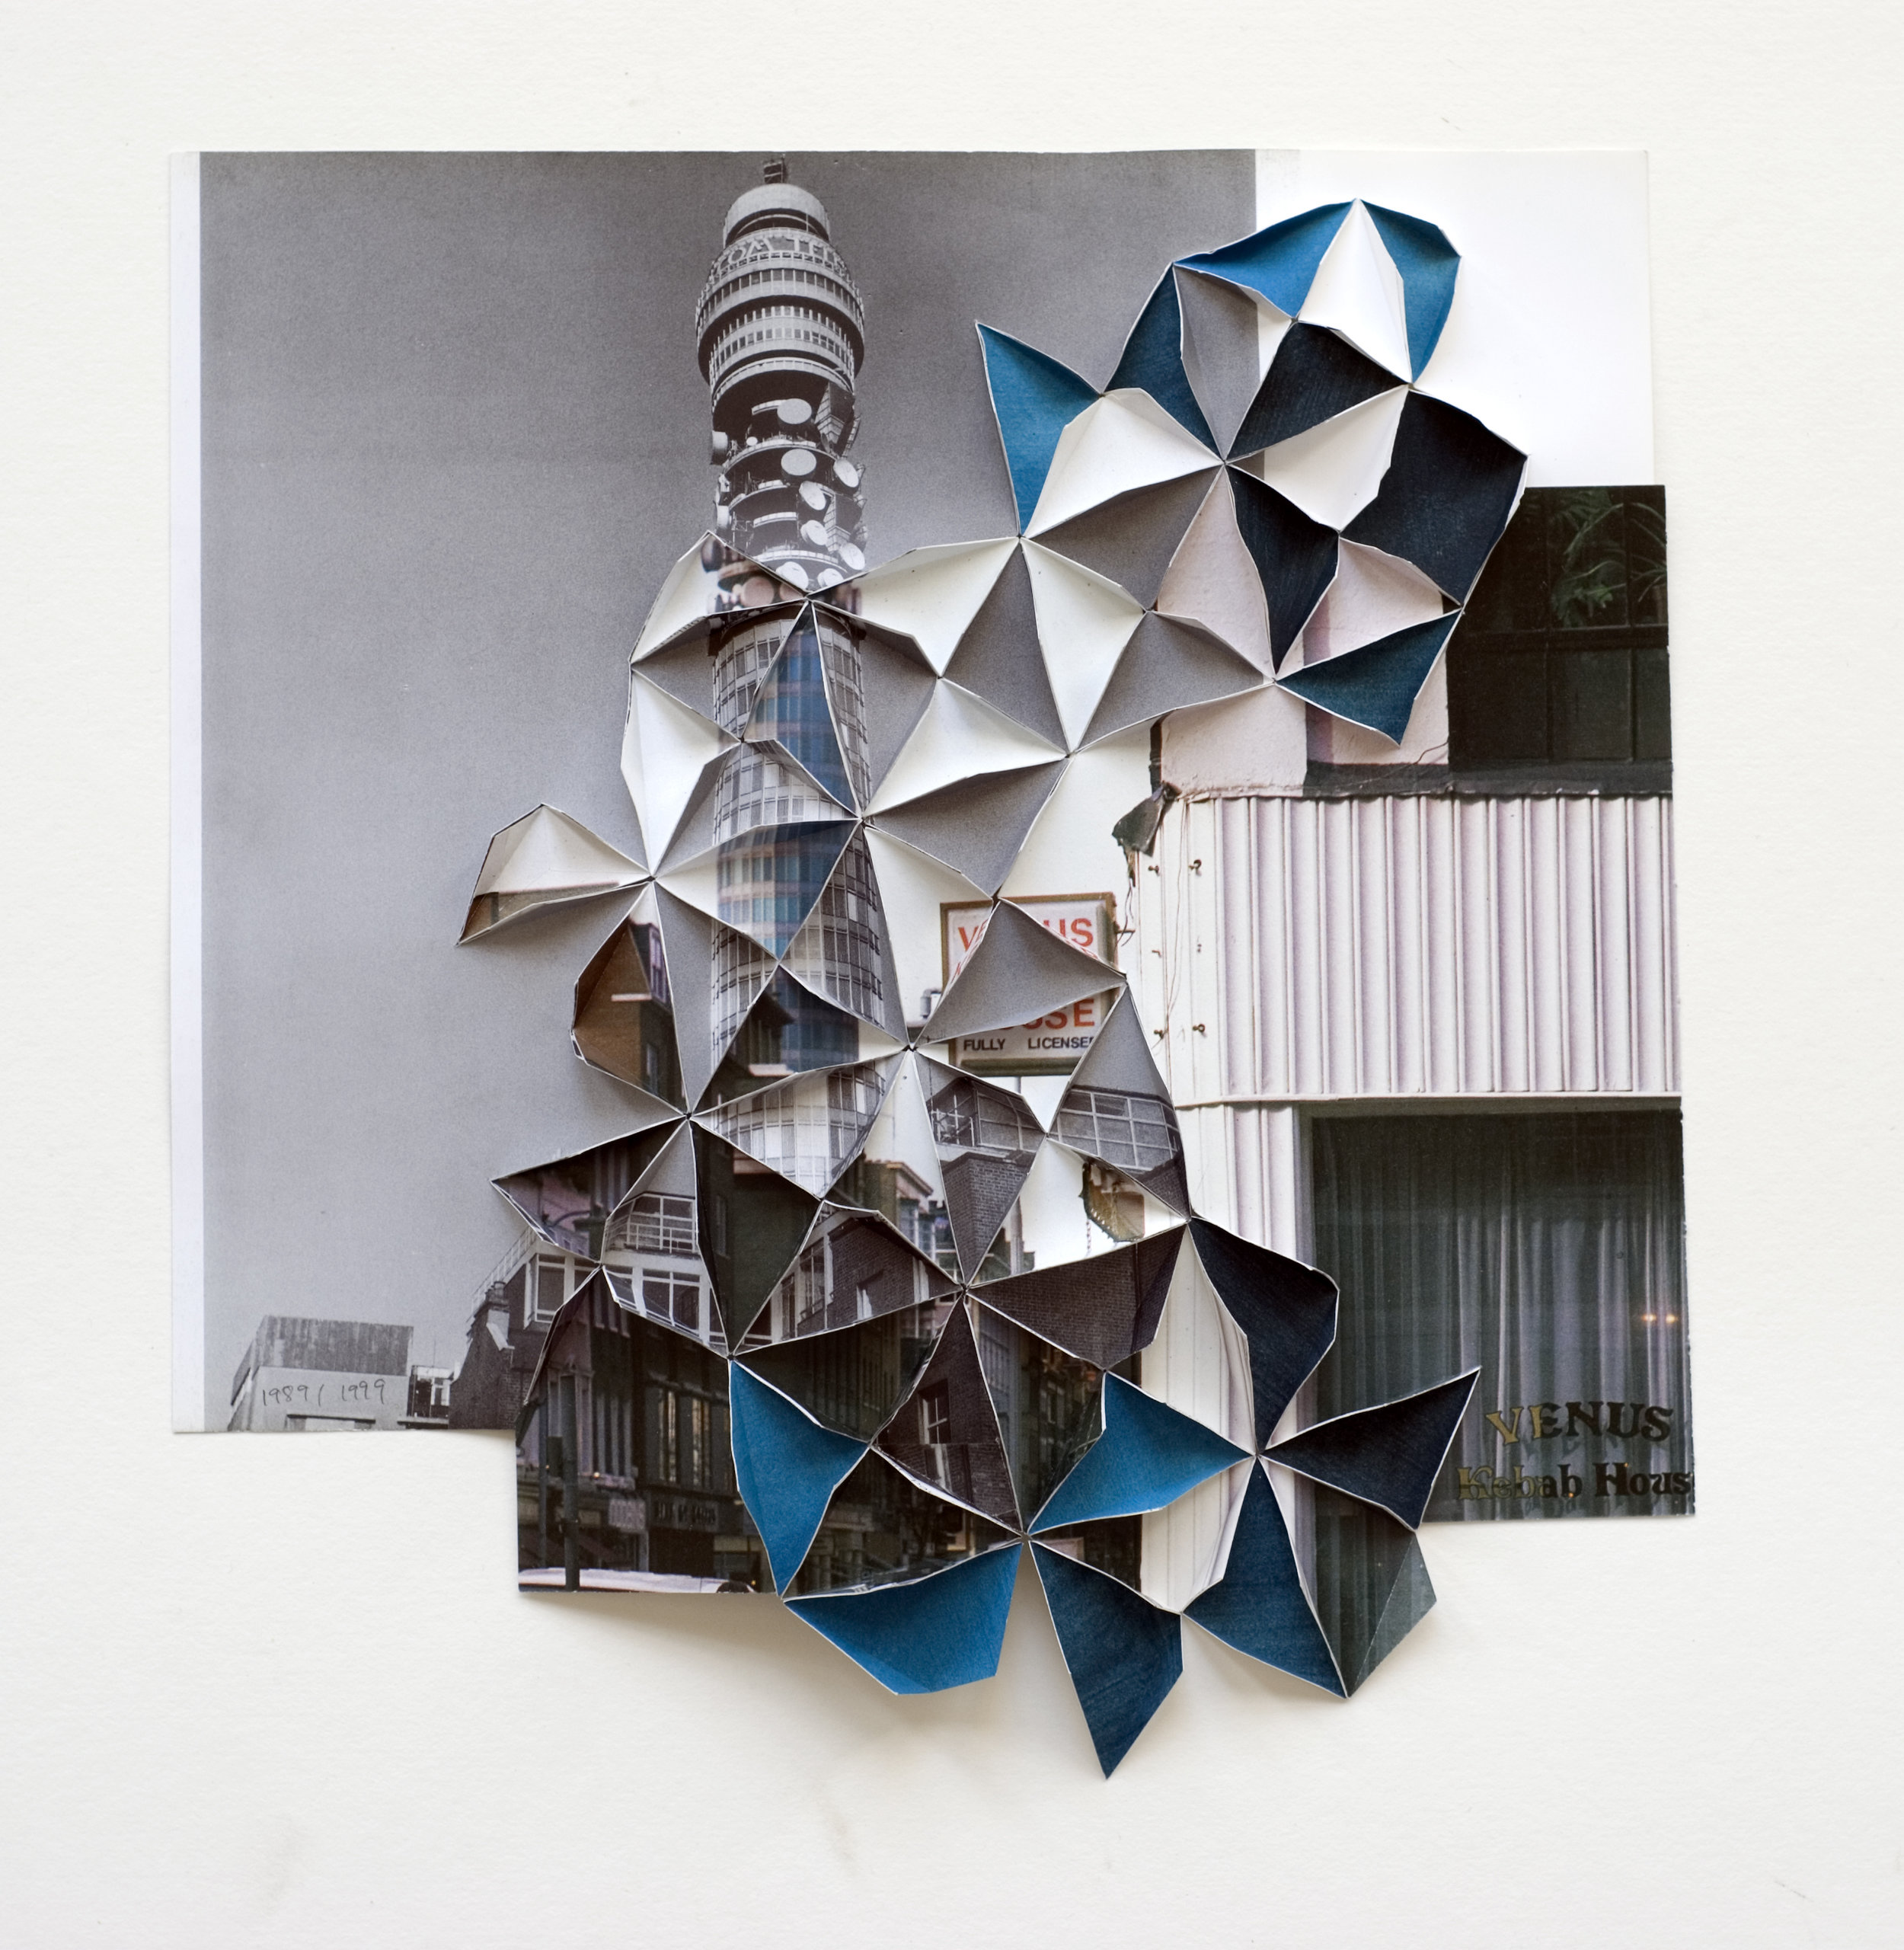 'Post Office Tower 1989|1999' 27 x 25 cm, 2009